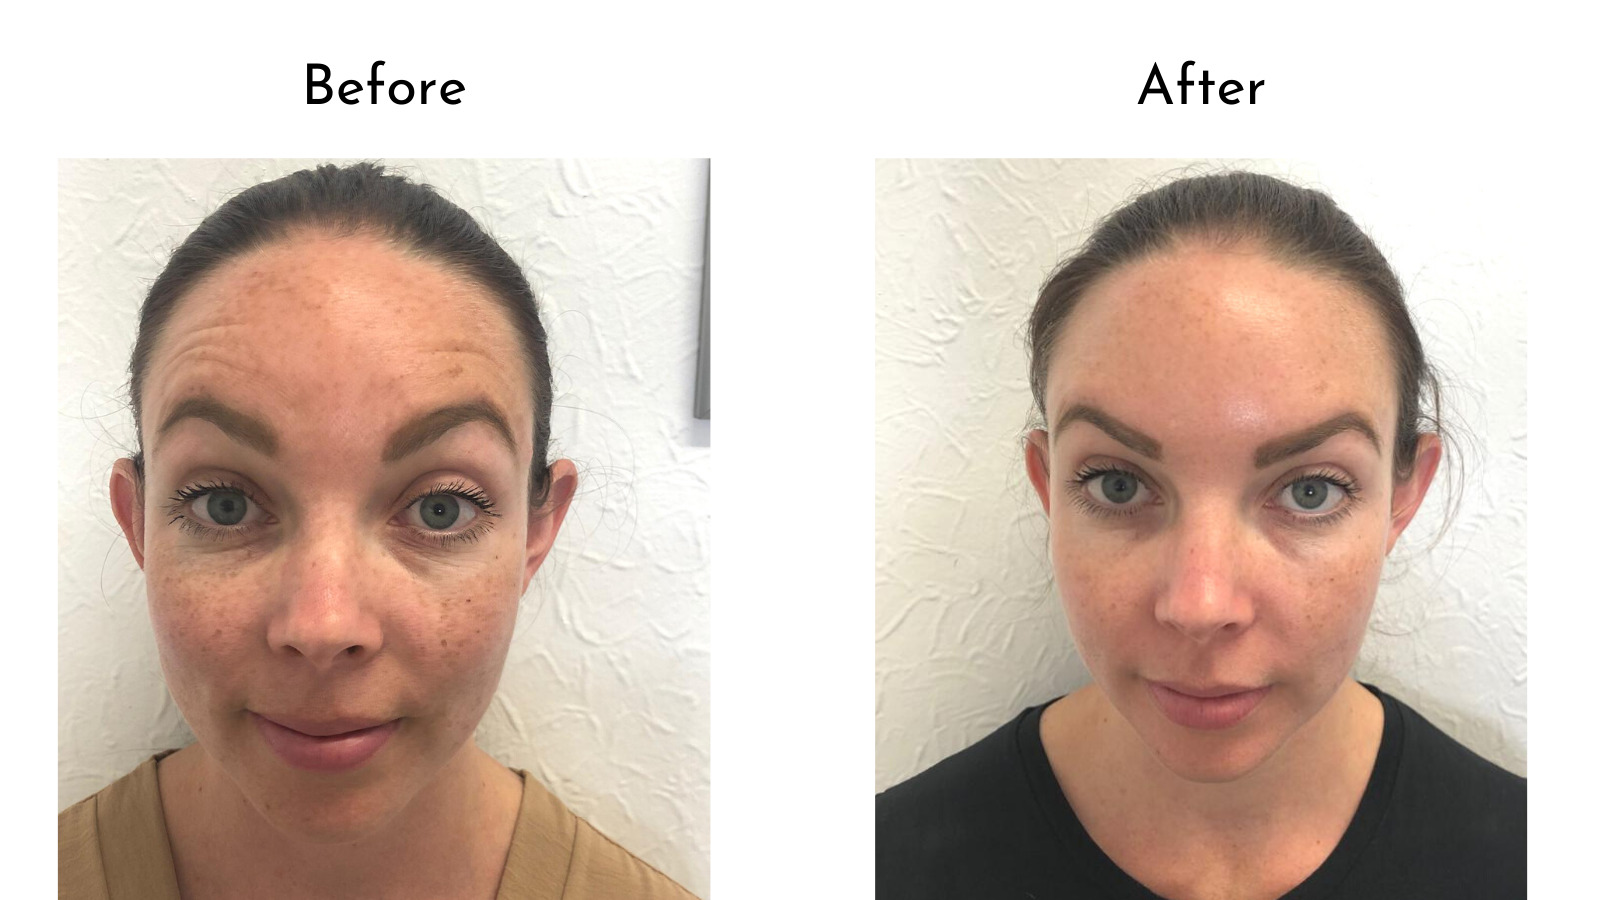 forehead Botox before and after photo comparison